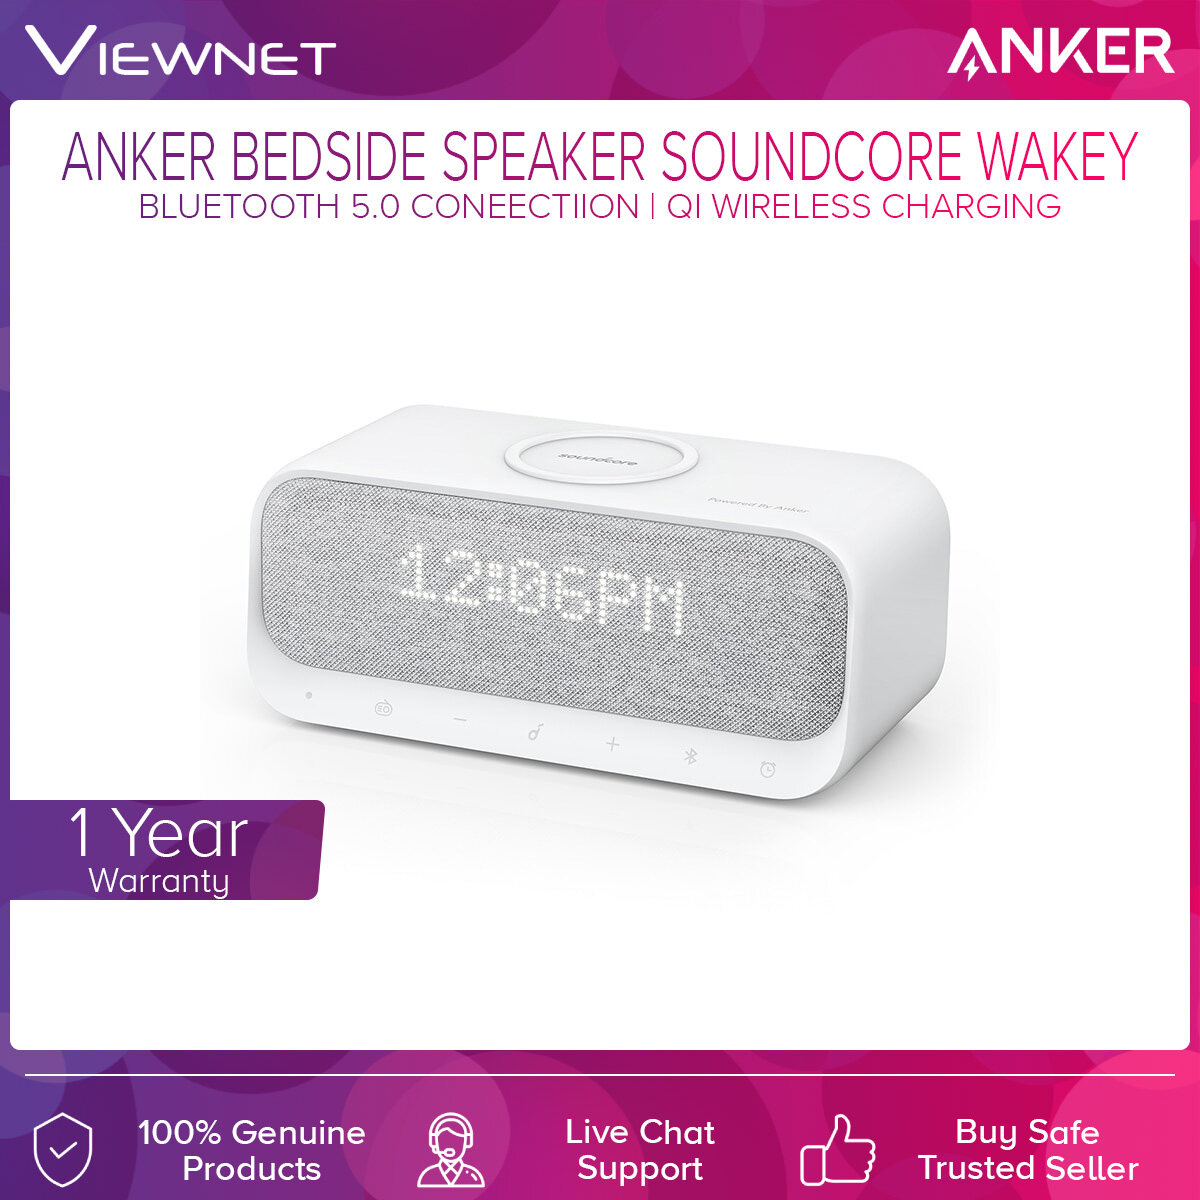 Anker Bluetooth Speaker SoundCore Wakey A3300 with Bluetooth 5.0 Connection, Alarm Clock, Stereo Sound, FM Radio, White Noise, Qi Wireless Charger